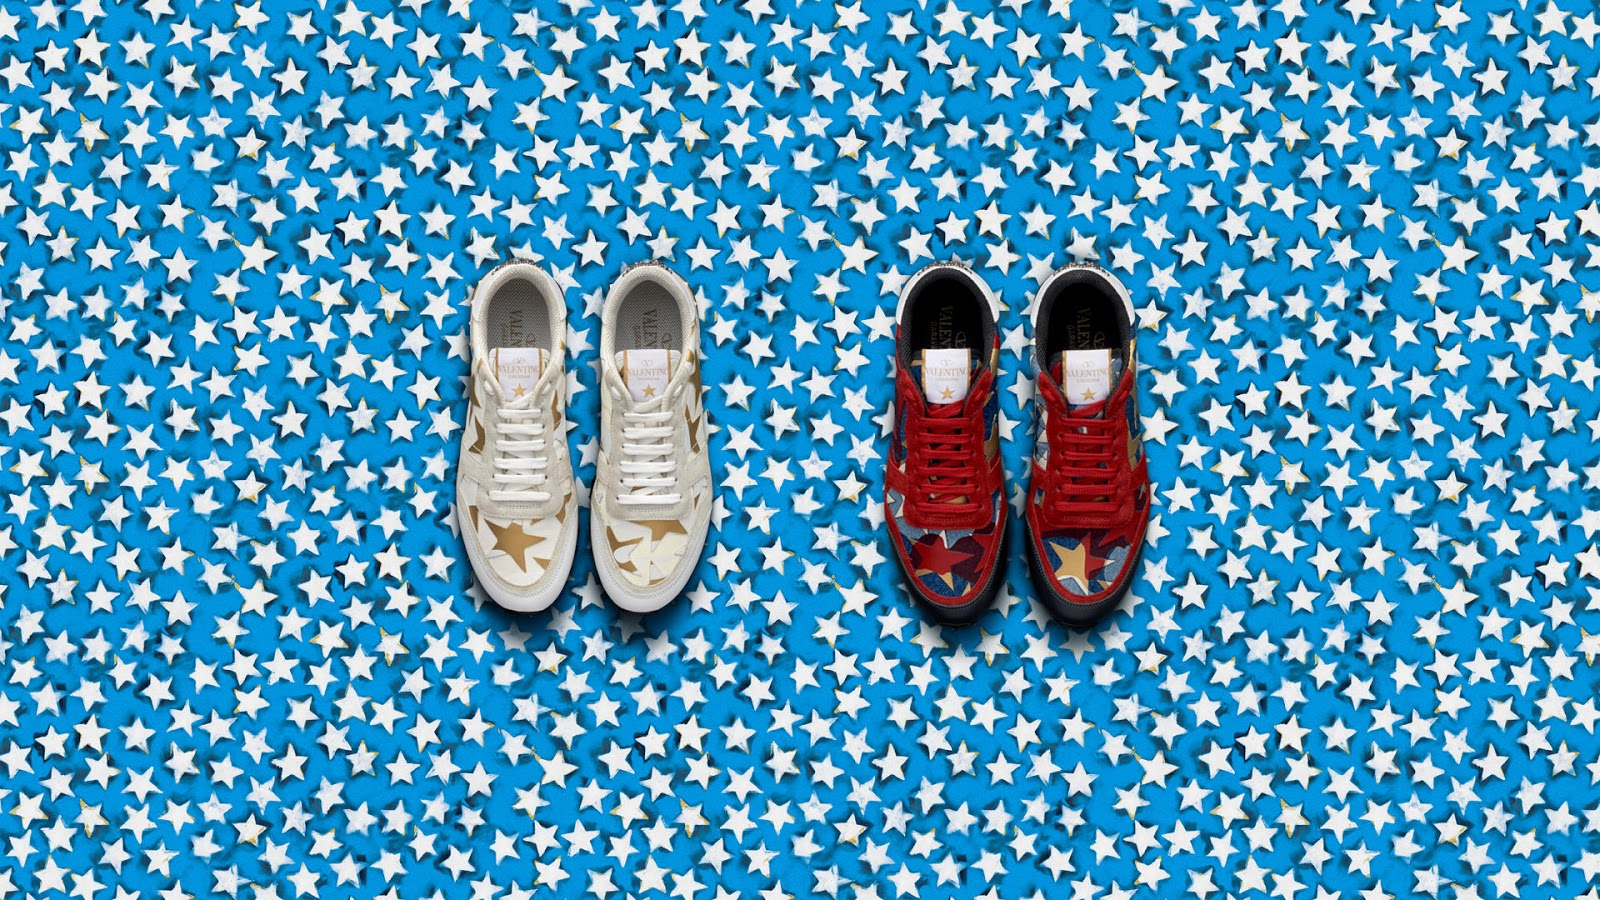 Valentino Design Wonder Woman Capsule Collection